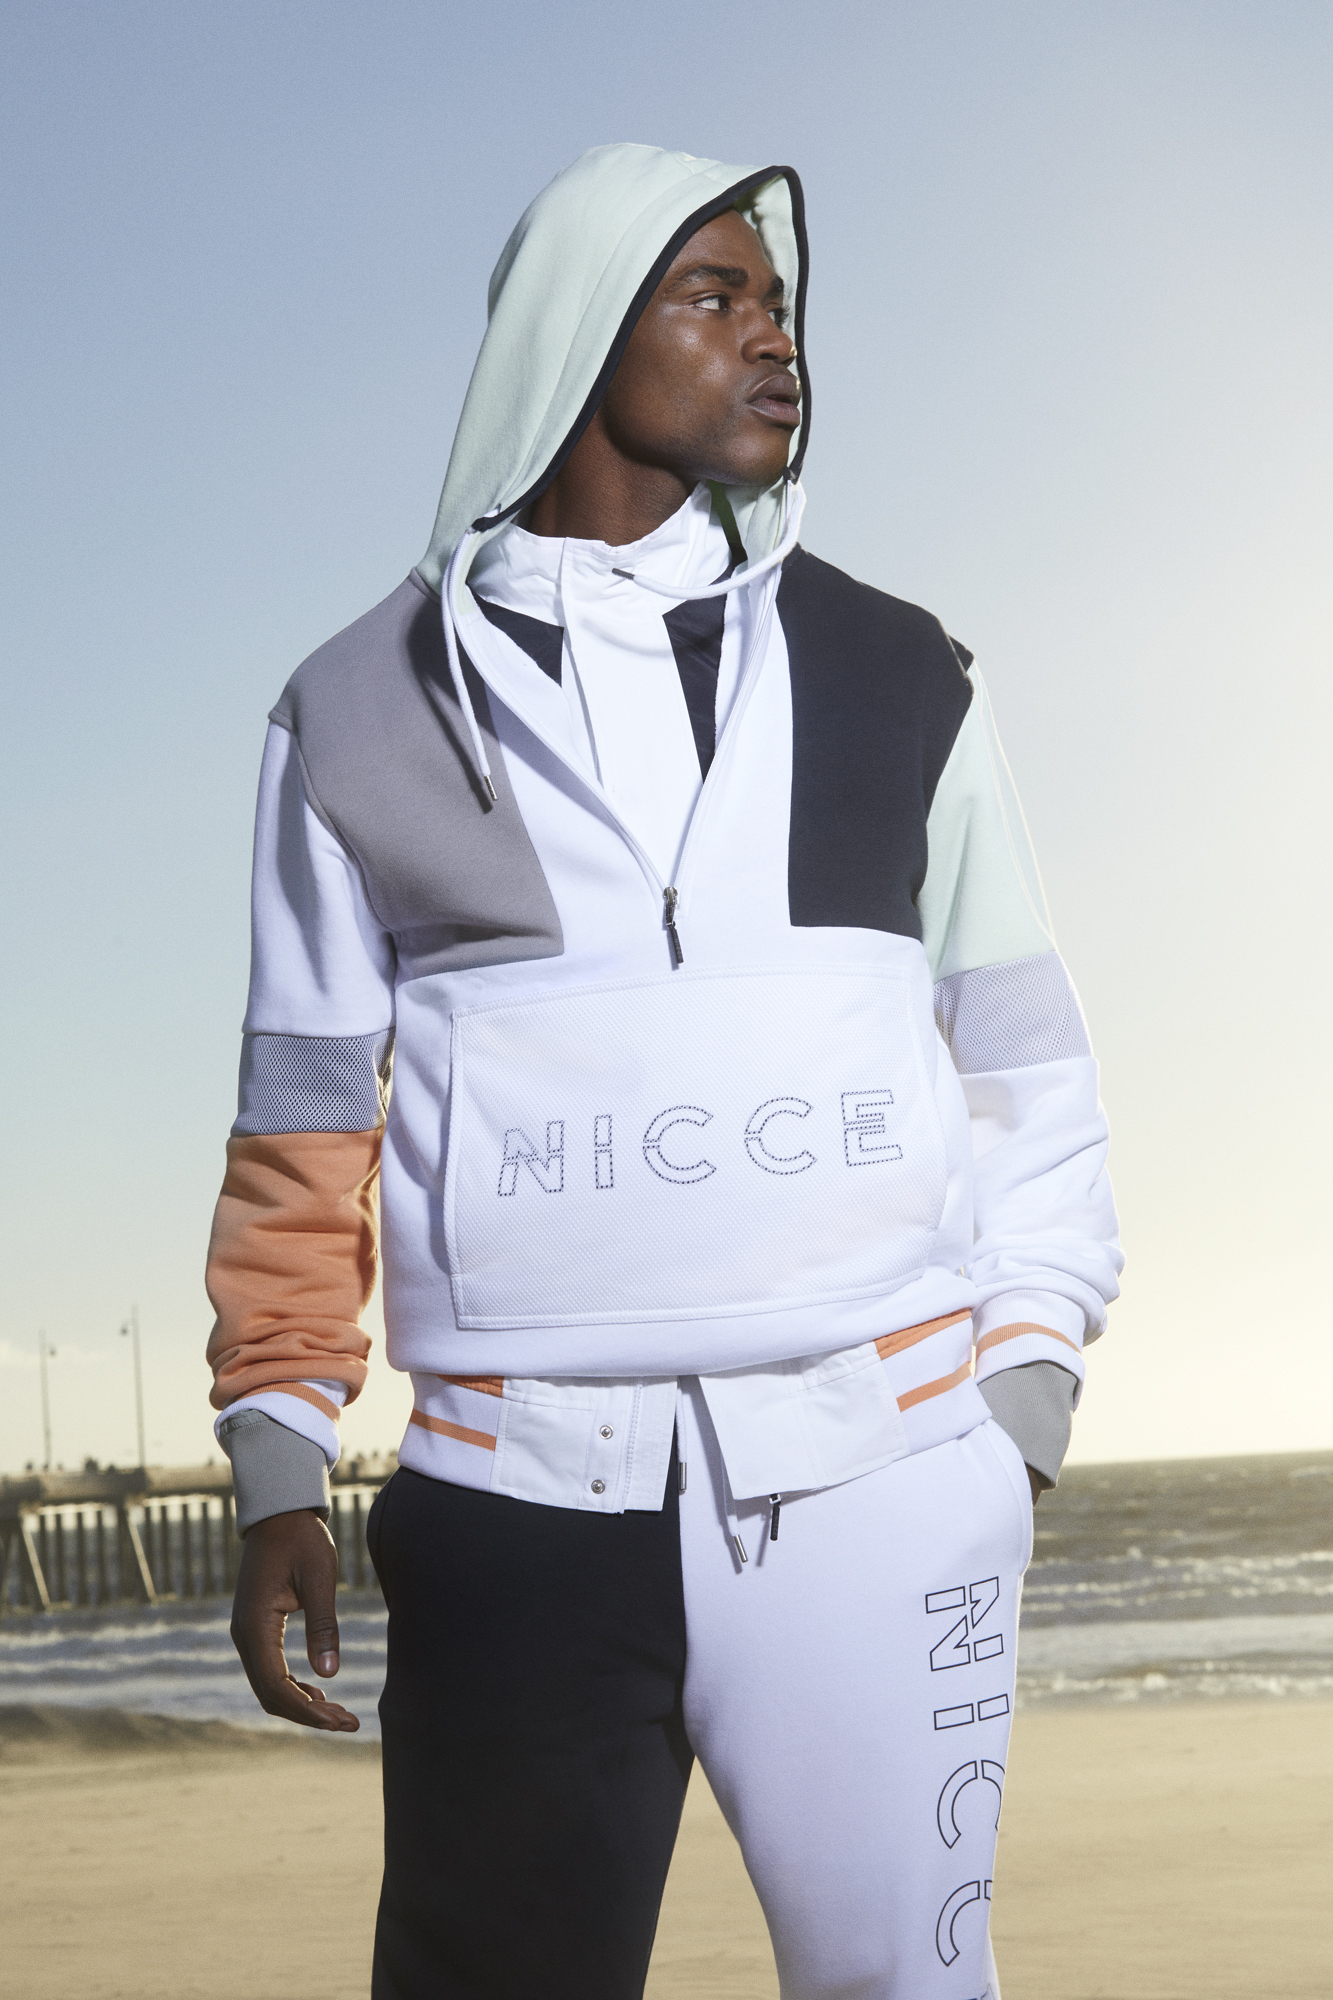 NICCE's new limited edition capsule collection White Label zip up